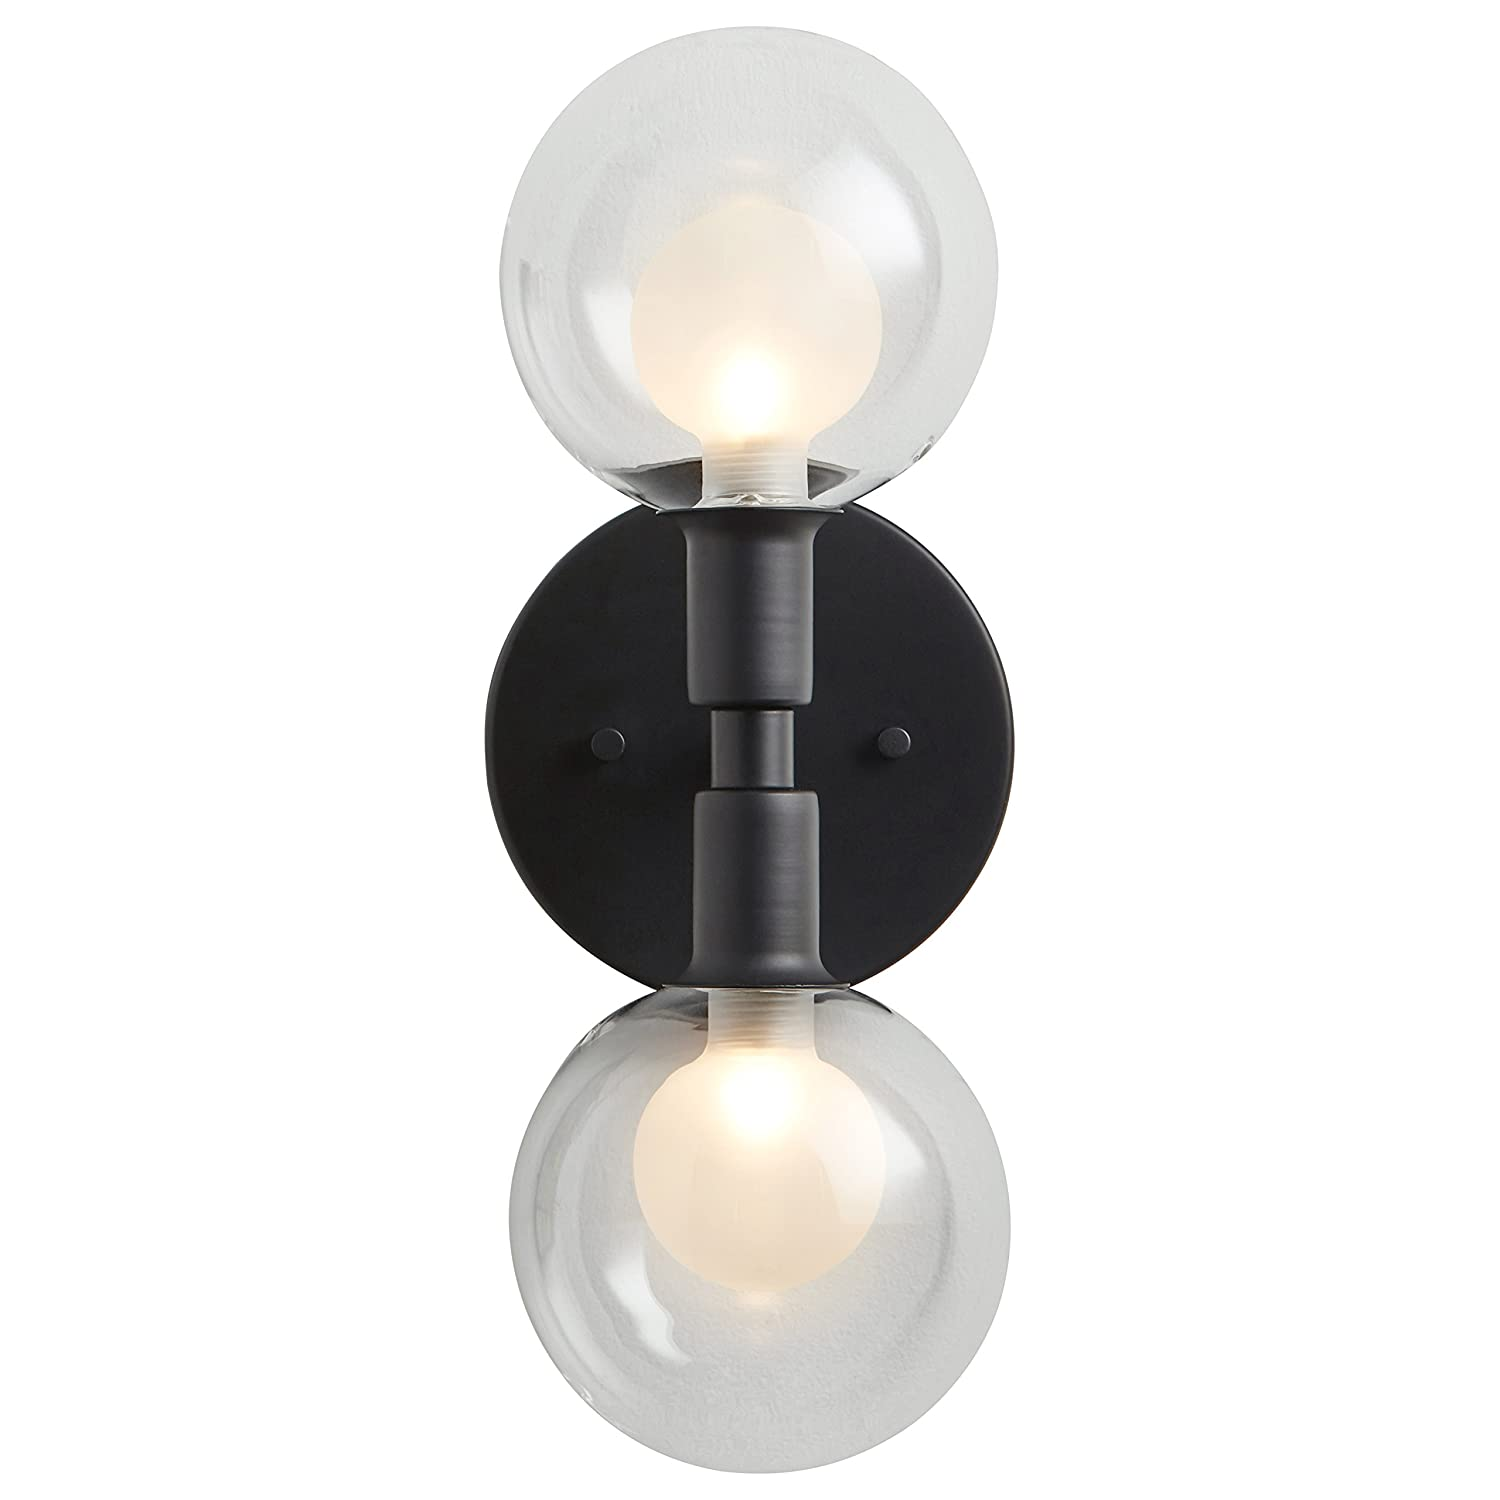 13.5H Rivet Mid-Century Modern Wall Sconce With Bulb Gold with Glass Globe